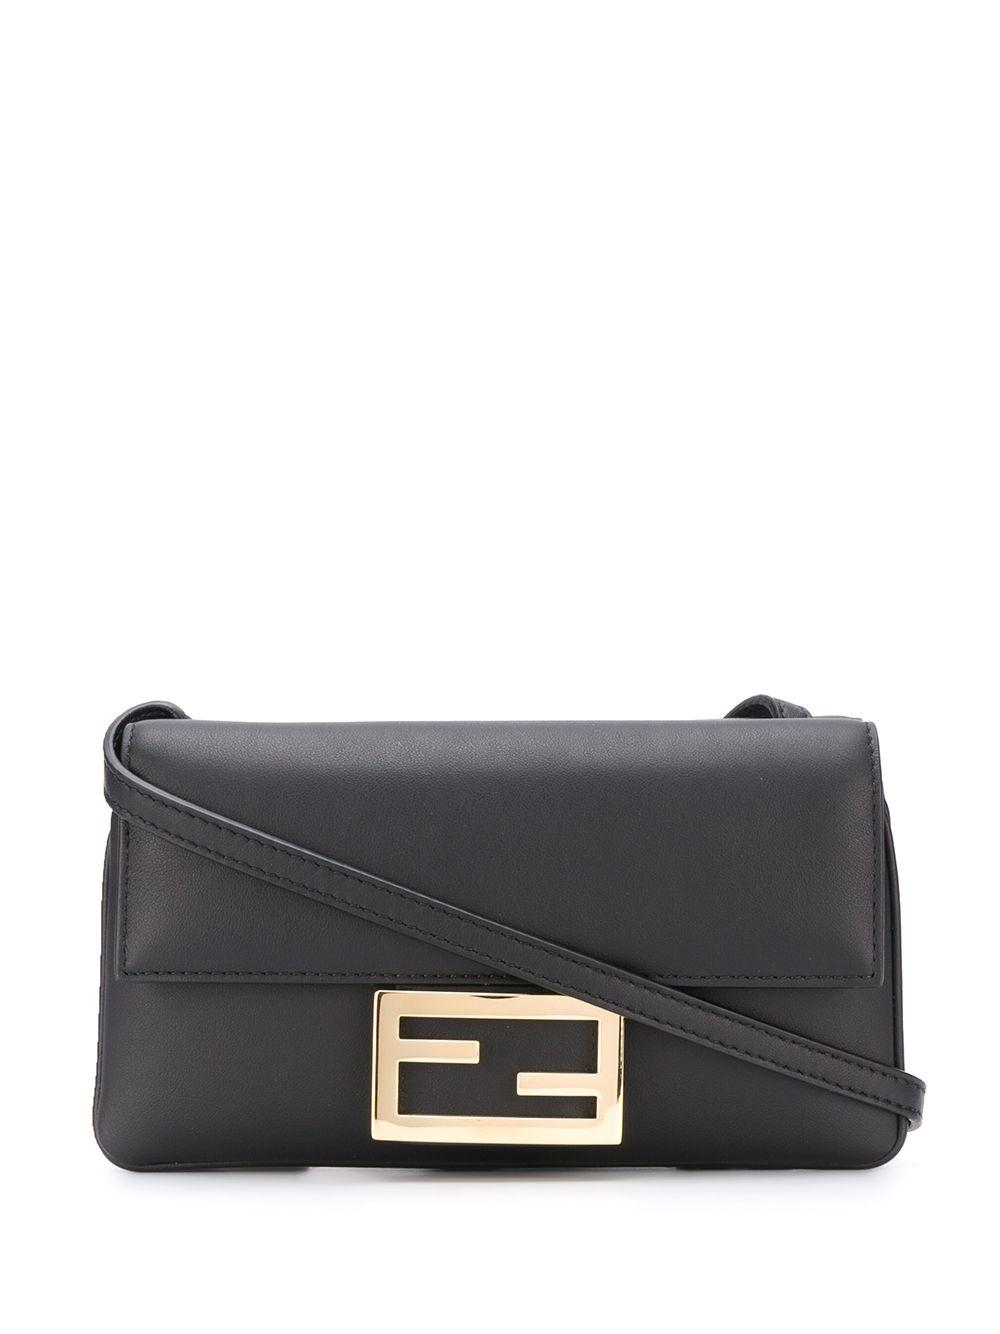 Duo Baguette Leather Bag Item # 8BS040-A5DY